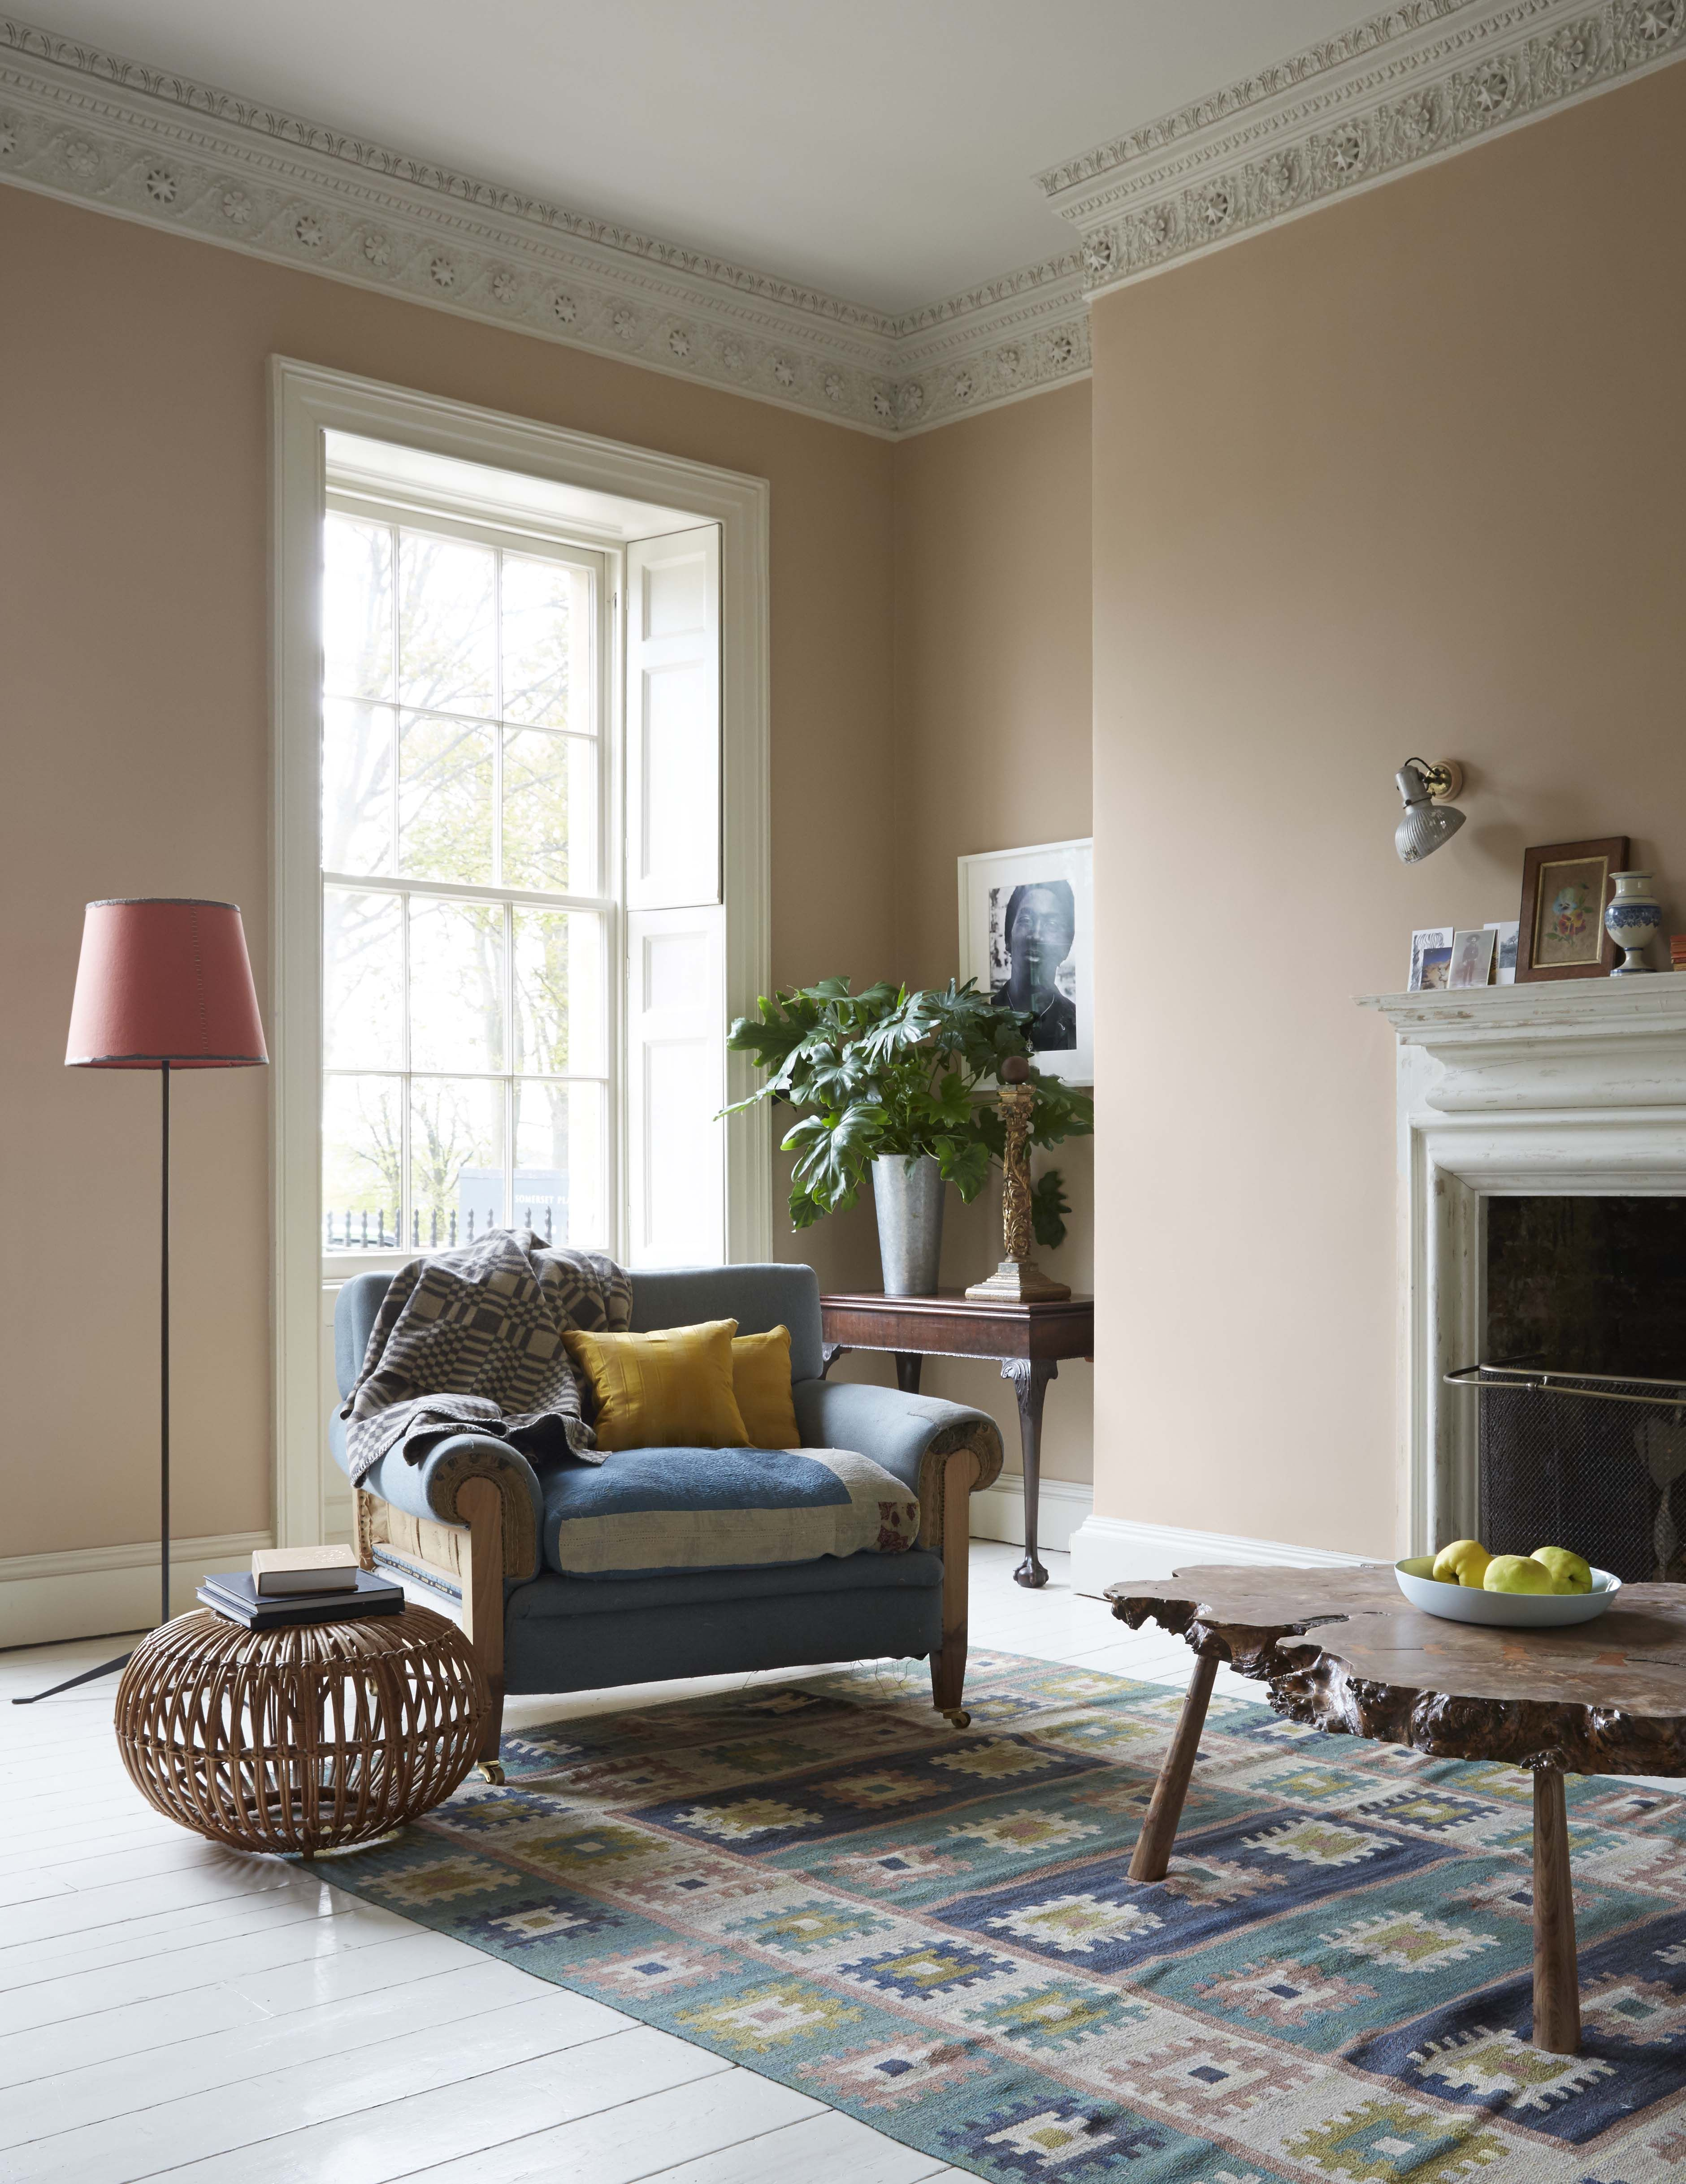 Pin On Sitting Room Inspiration #peach #walls #living #room